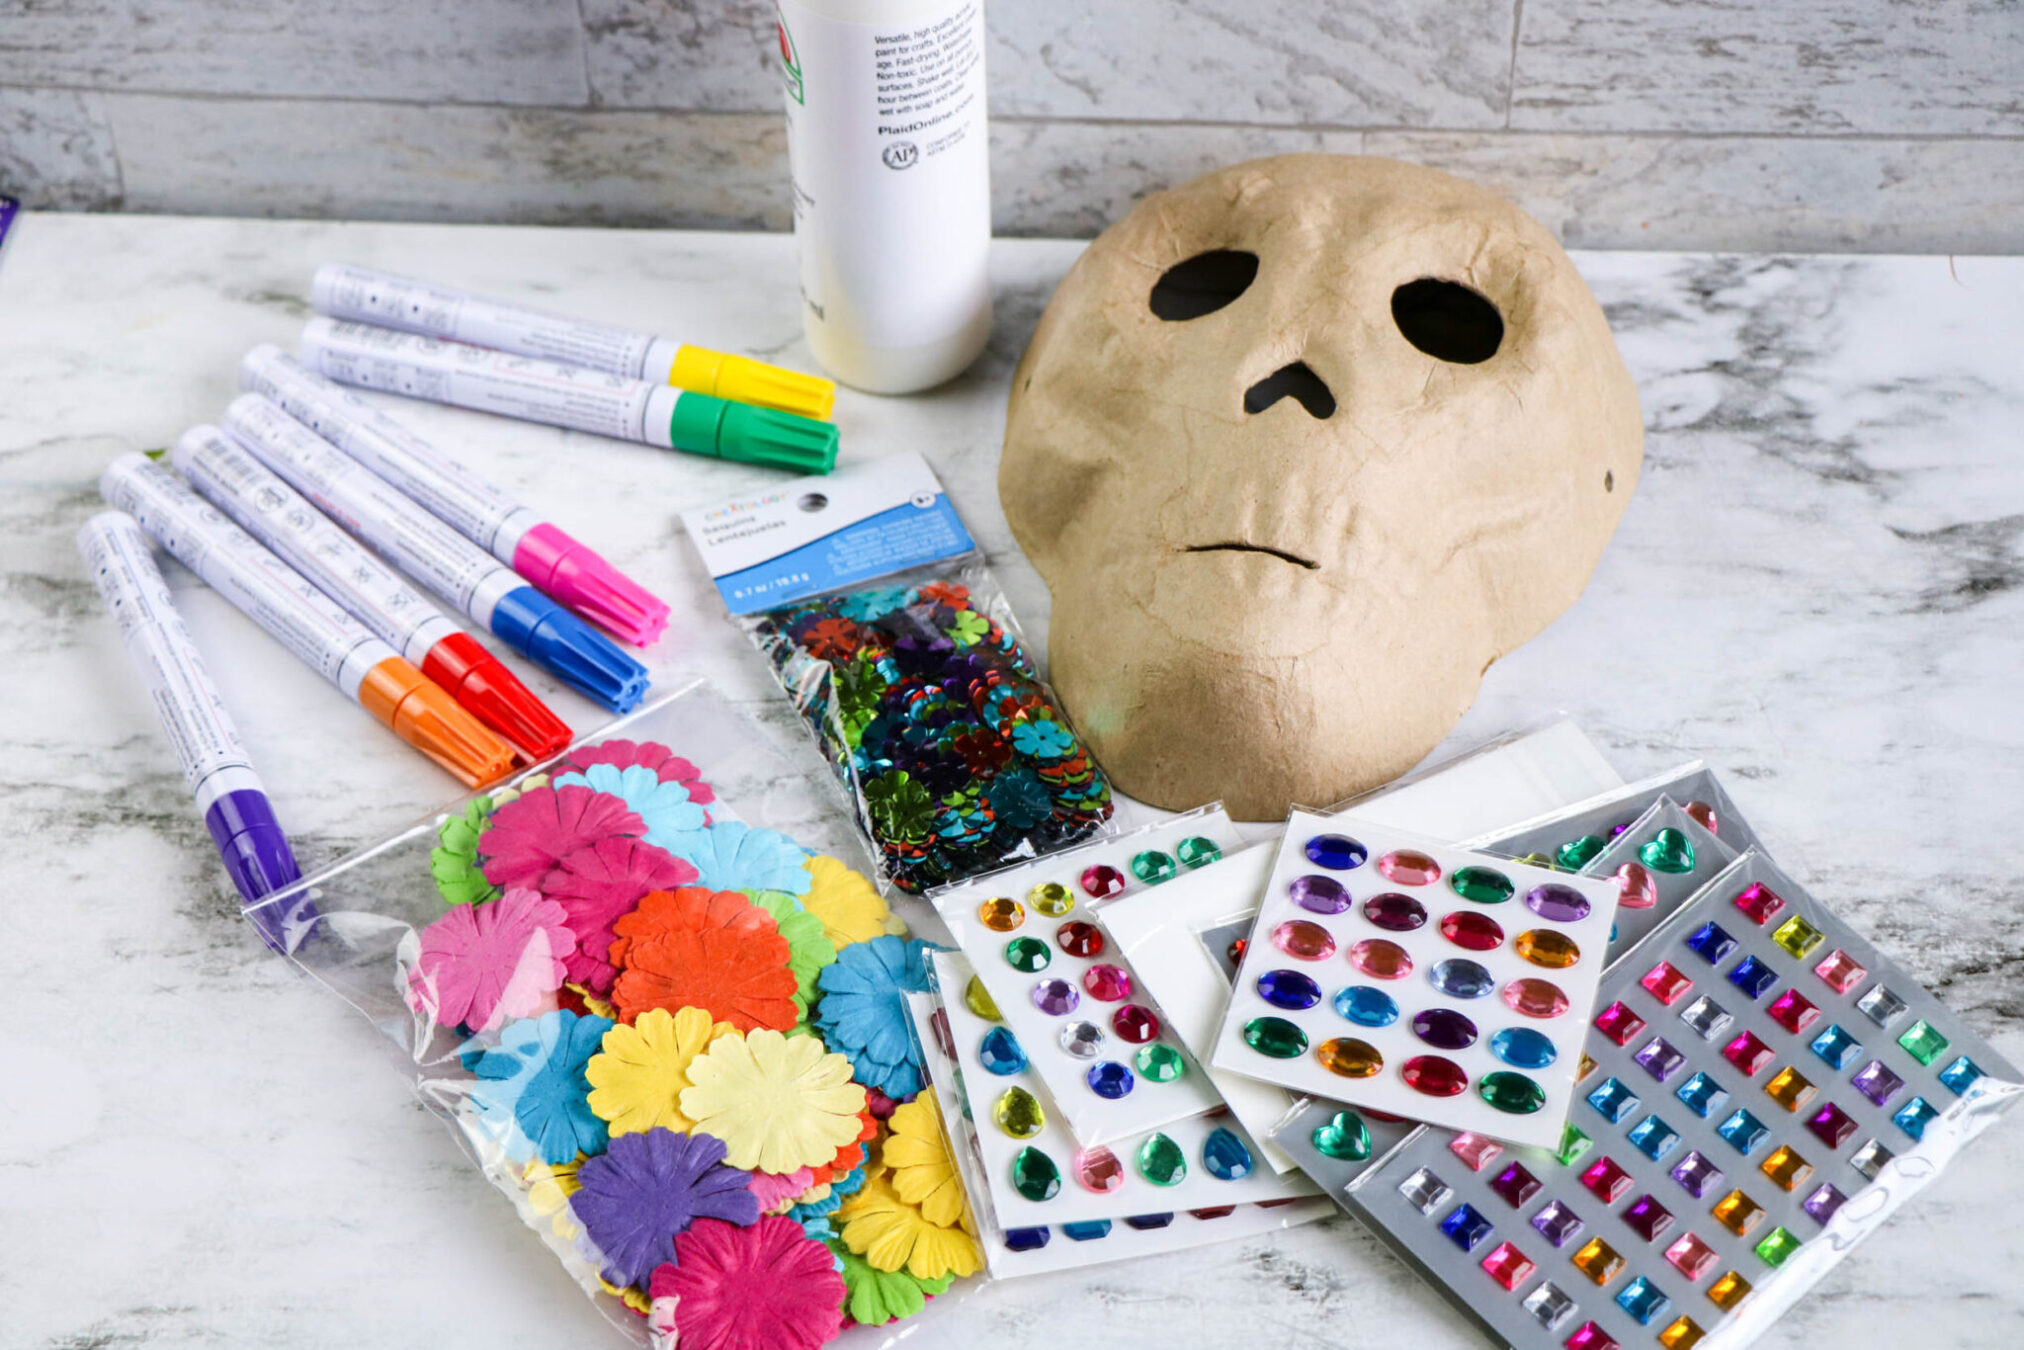 How to Decorate a Sugar Skull